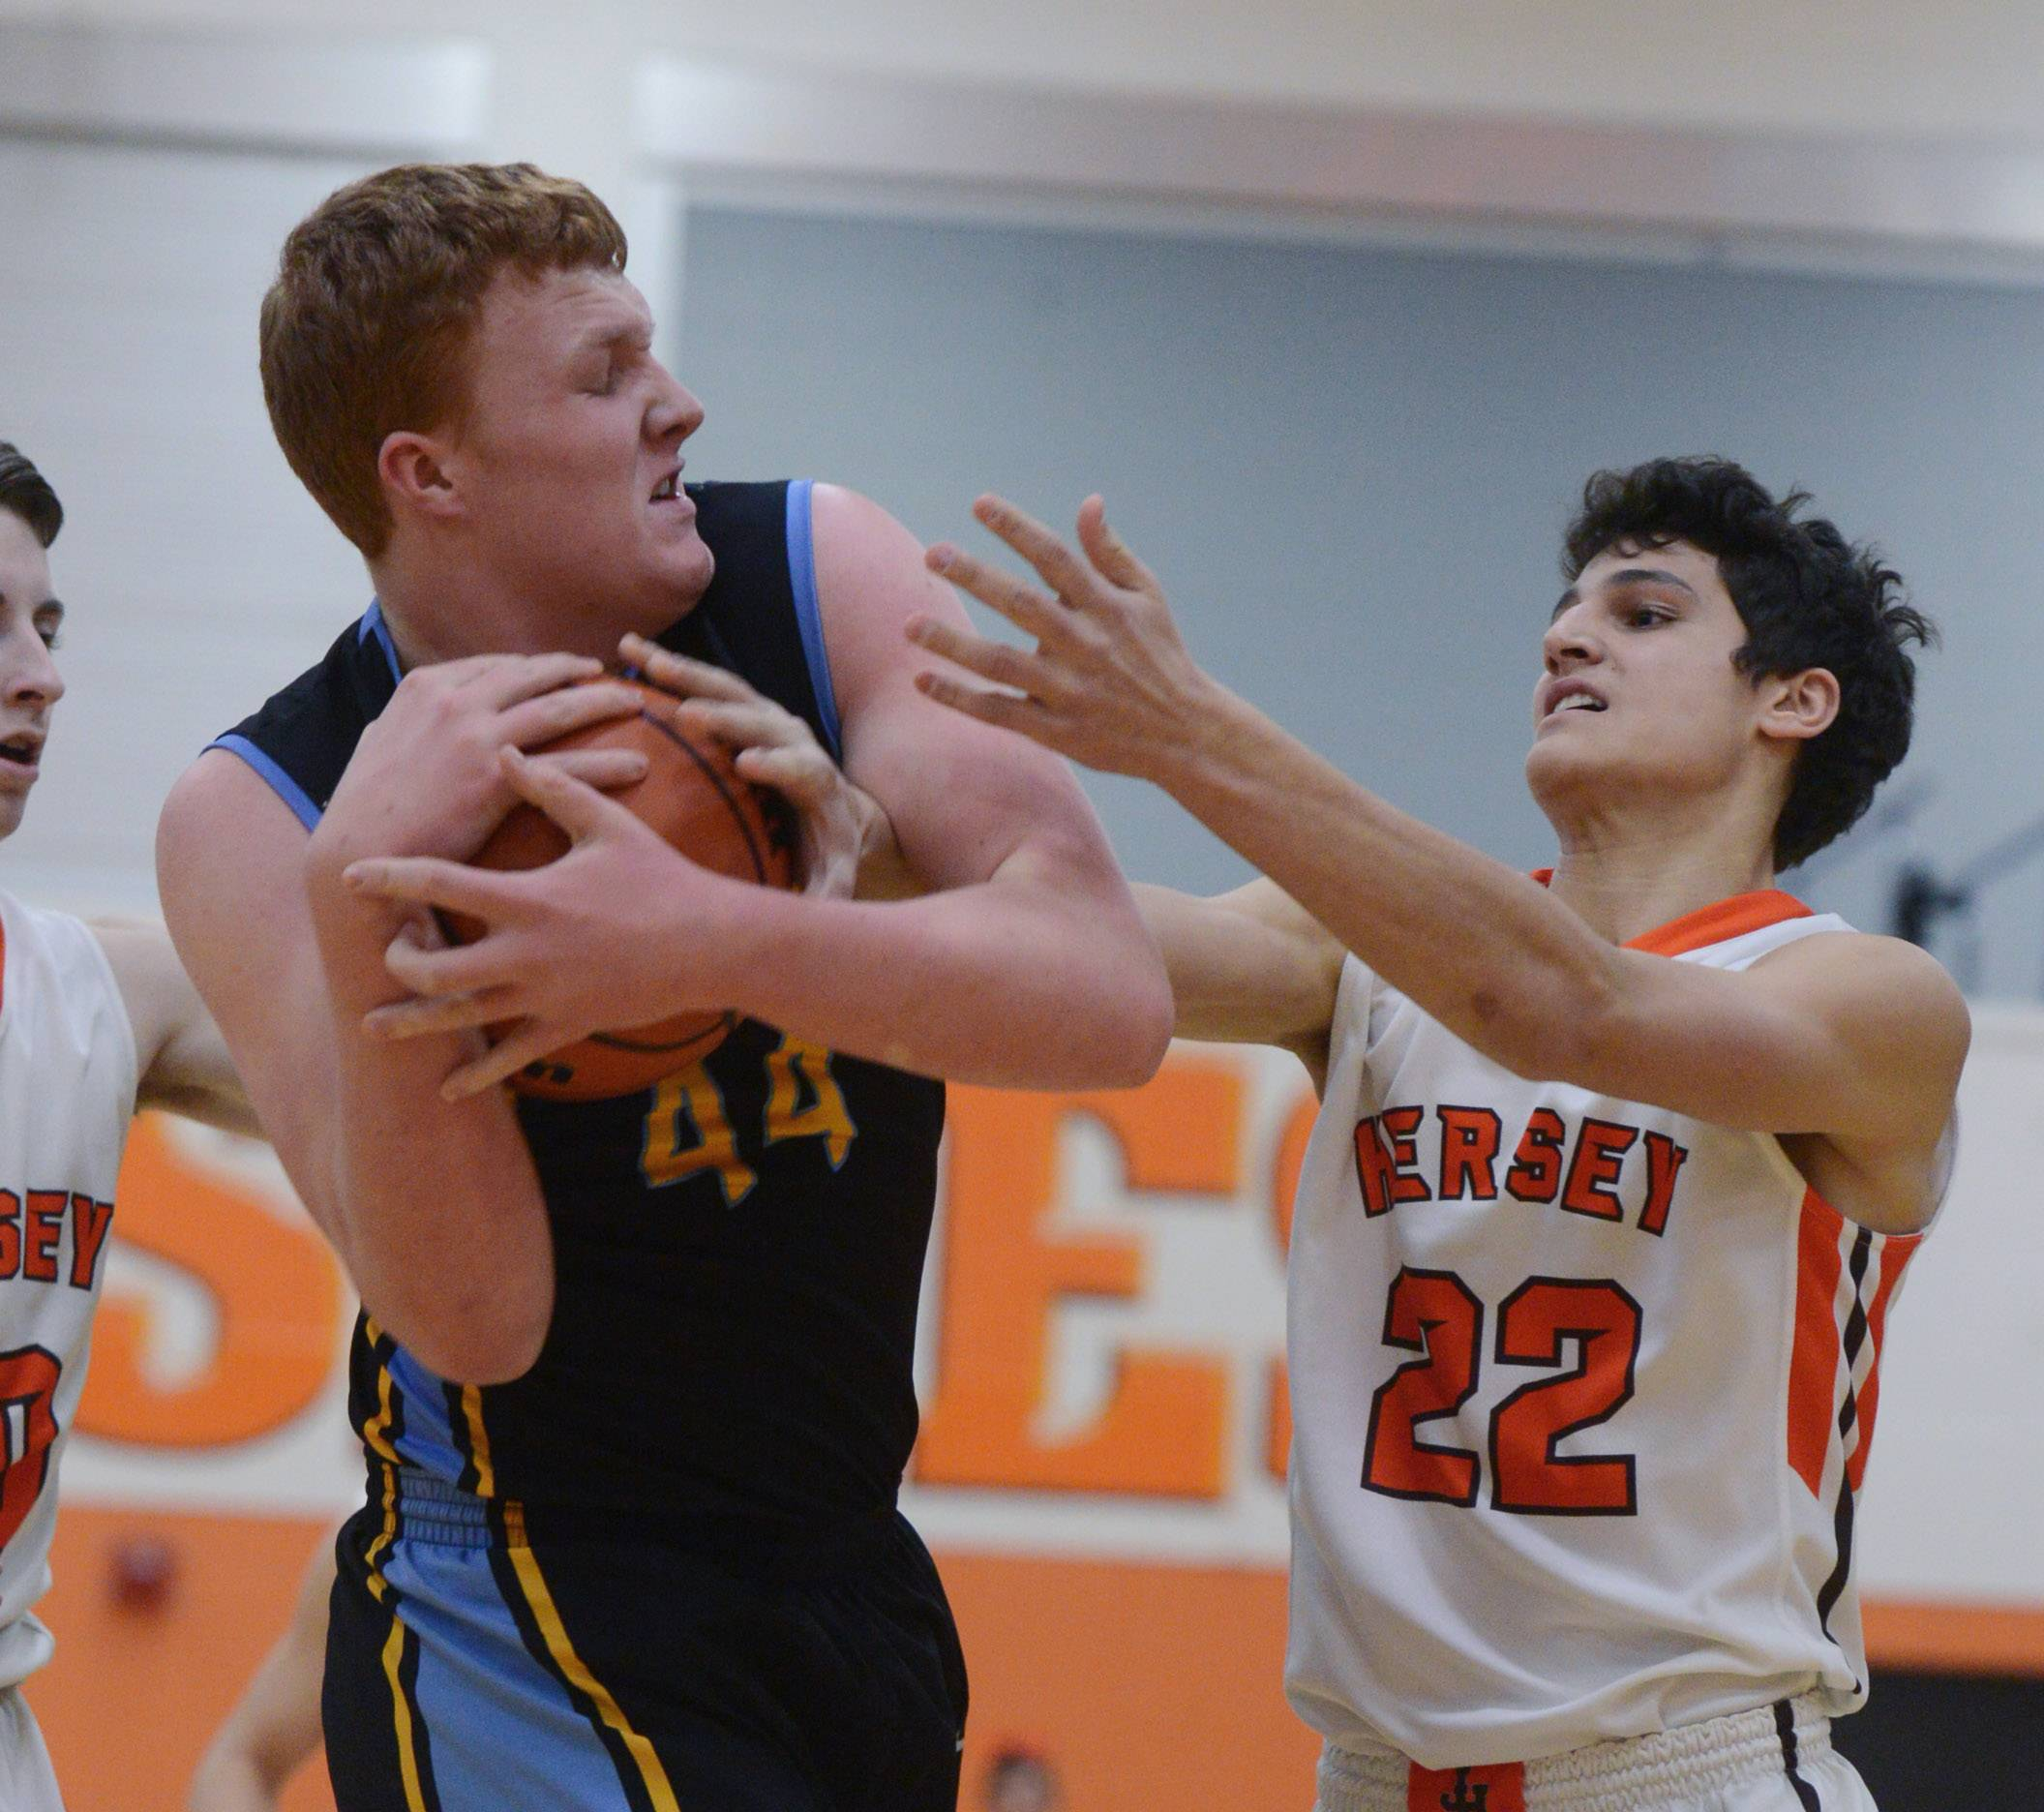 Maine West's Jack Collins, left, grabs a rebound in front of Hersey's Jace Coffaro.